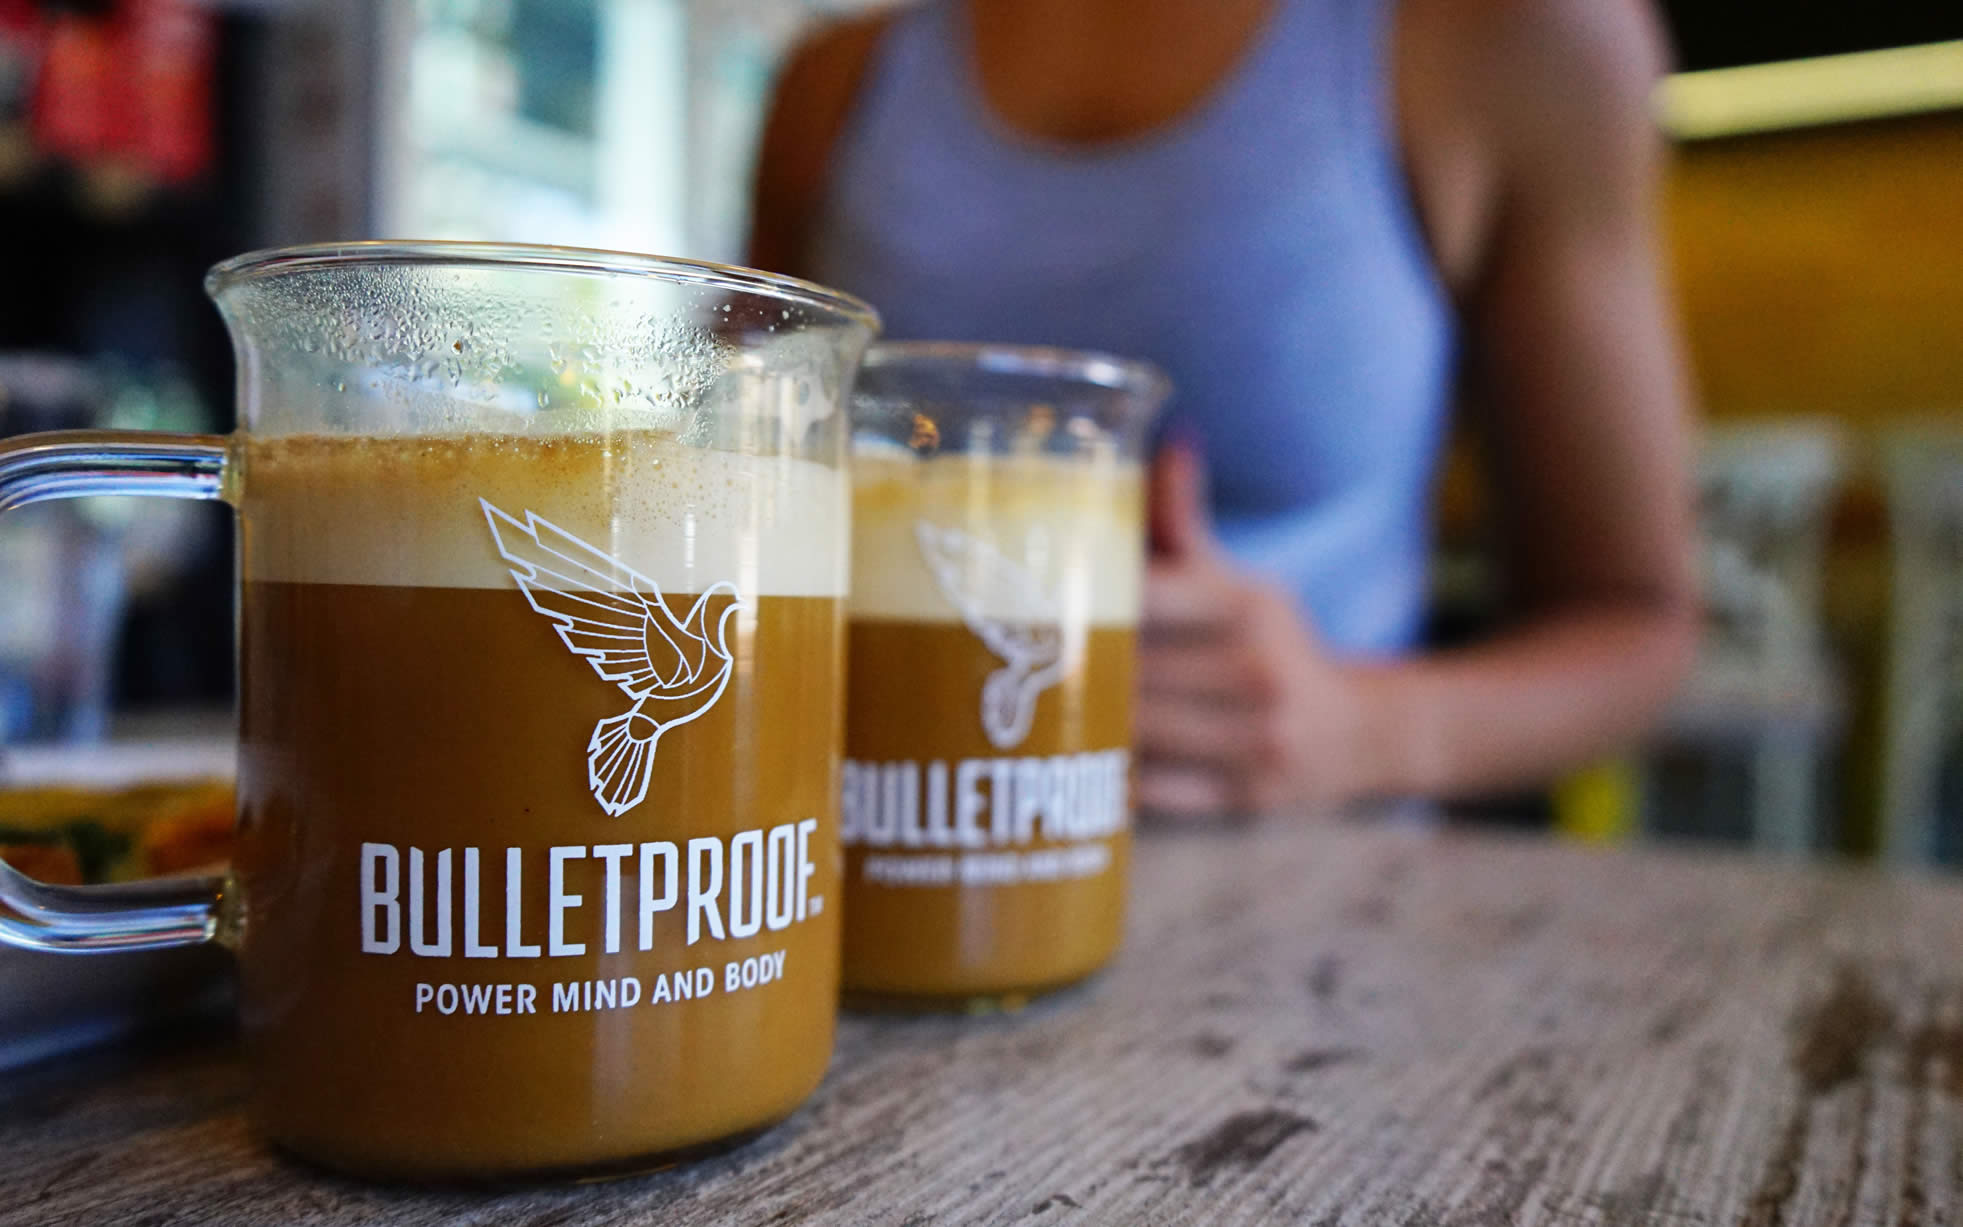 Karibu Cafe's Bulletproof Coffee in Australia